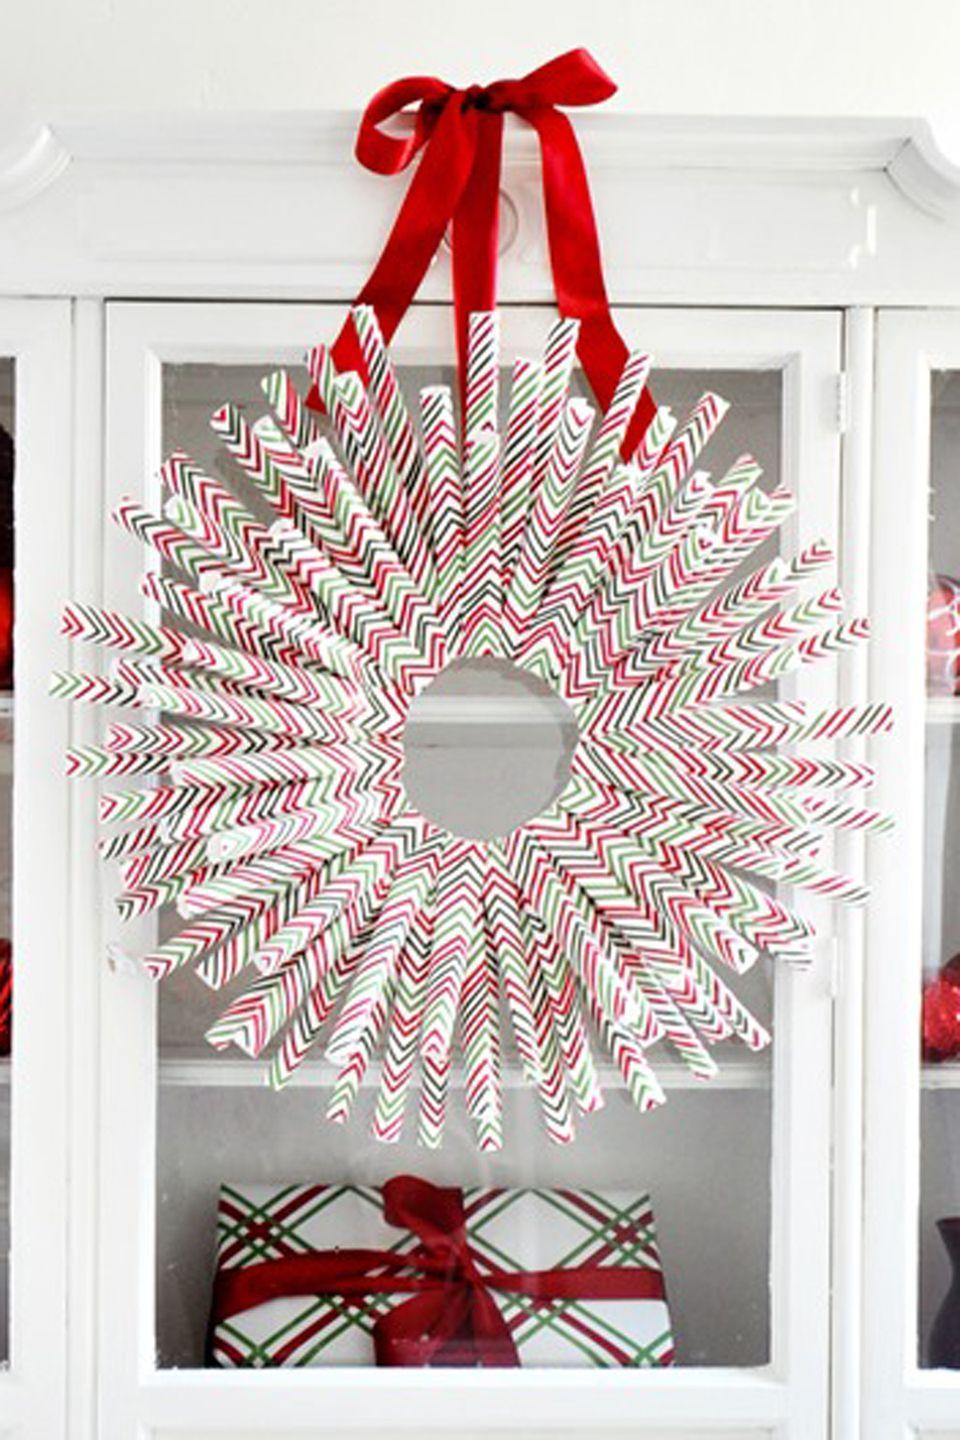 """<p>You know you've just finished your gift wrapping when you're staring at a mile-high pile of wrapping paper odds and ends. Combine them all into the most creative wreath on the block. </p><p><a href=""""http://centsationalgirl.com/2013/11/diy-wrapping-paper-wreath/"""" rel=""""nofollow noopener"""" target=""""_blank"""" data-ylk=""""slk:Get the tutorial at Centsational Girl »"""" class=""""link rapid-noclick-resp""""><em>Get the tutorial at Centsational Girl »</em></a></p>"""